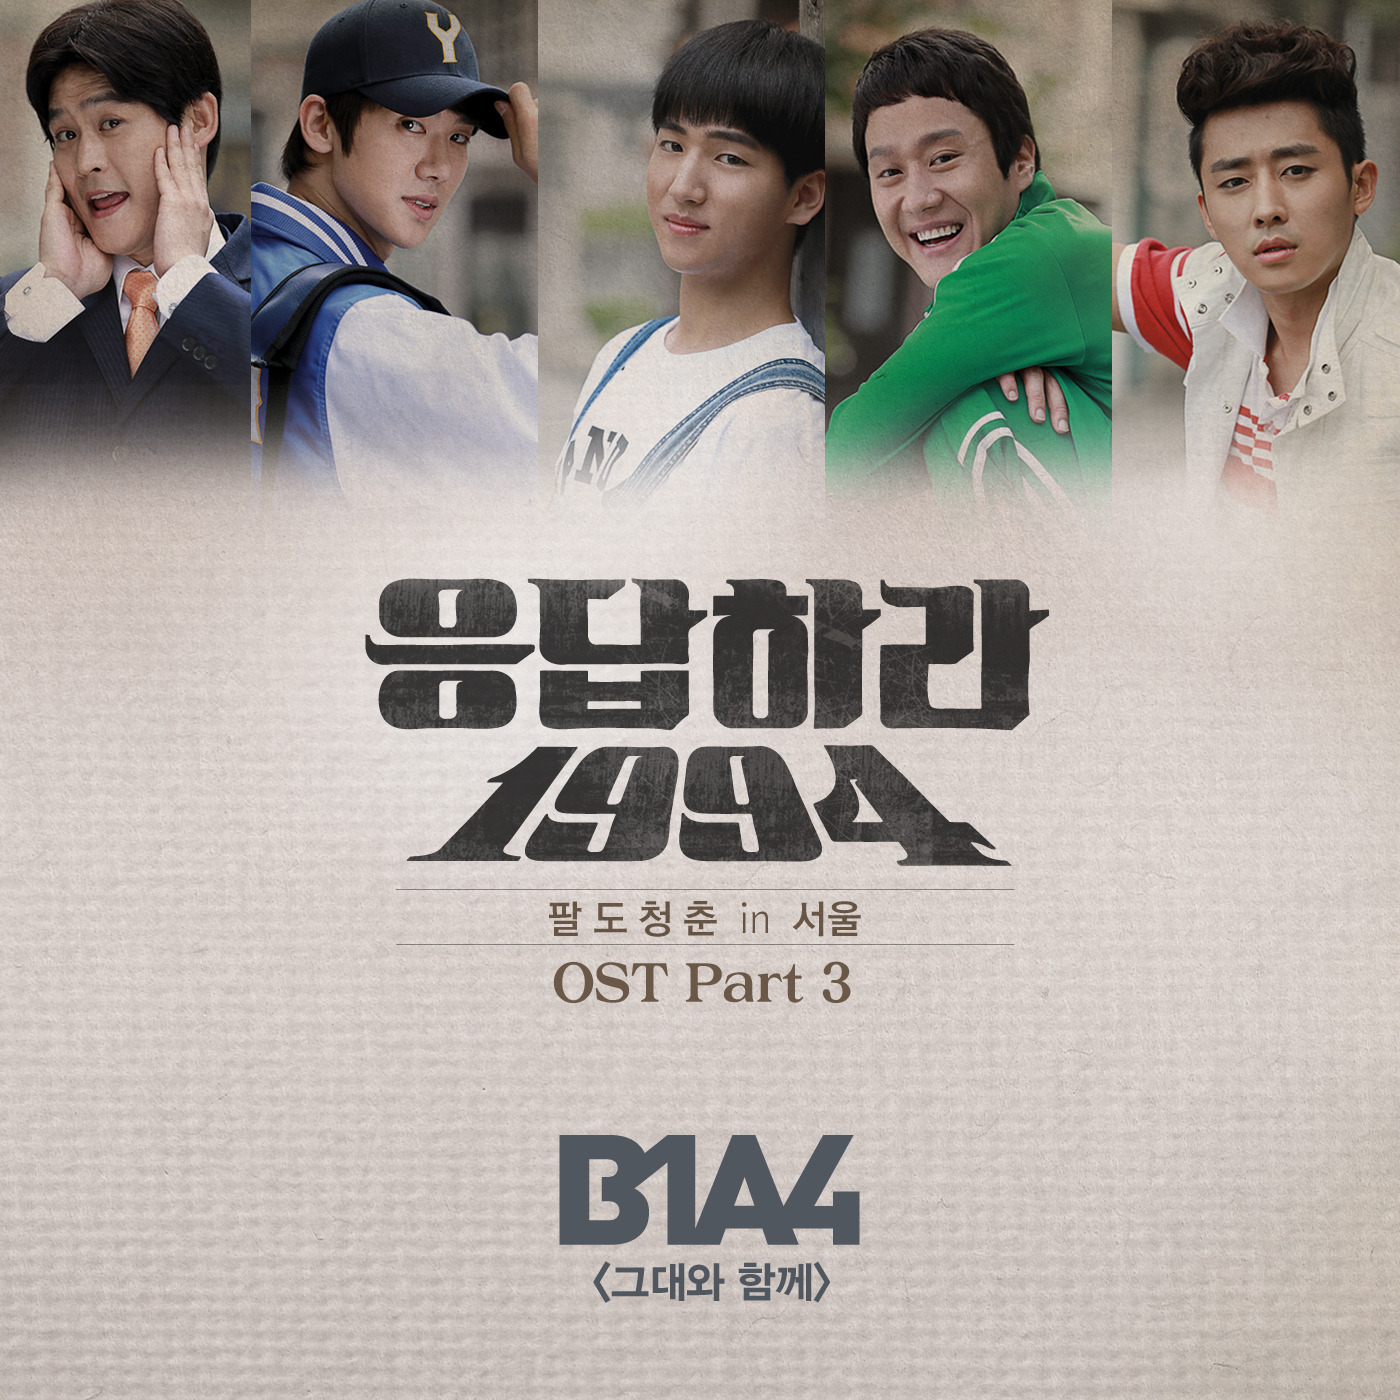 B1A4 - With you (Reply 1994 OST)